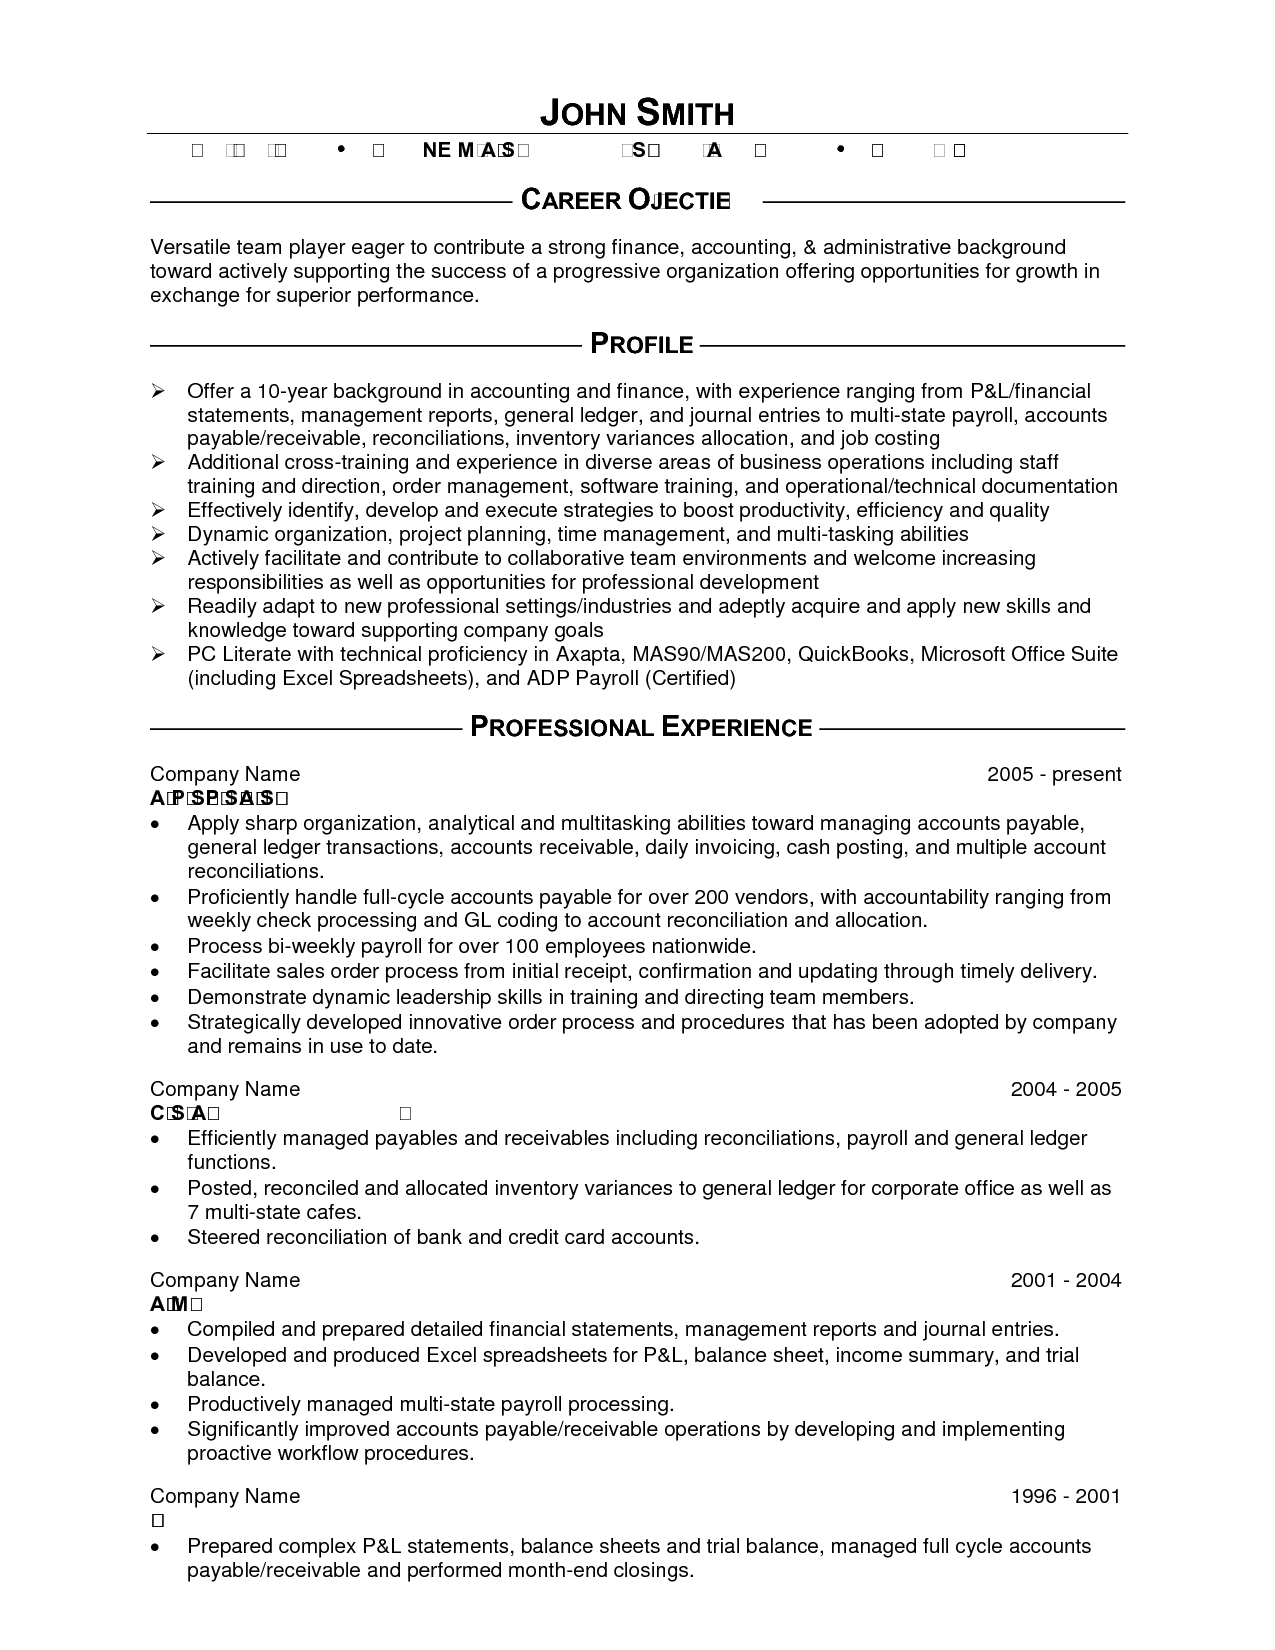 Actuary Resume Template A Modest Proposal Ideas For Essays 50